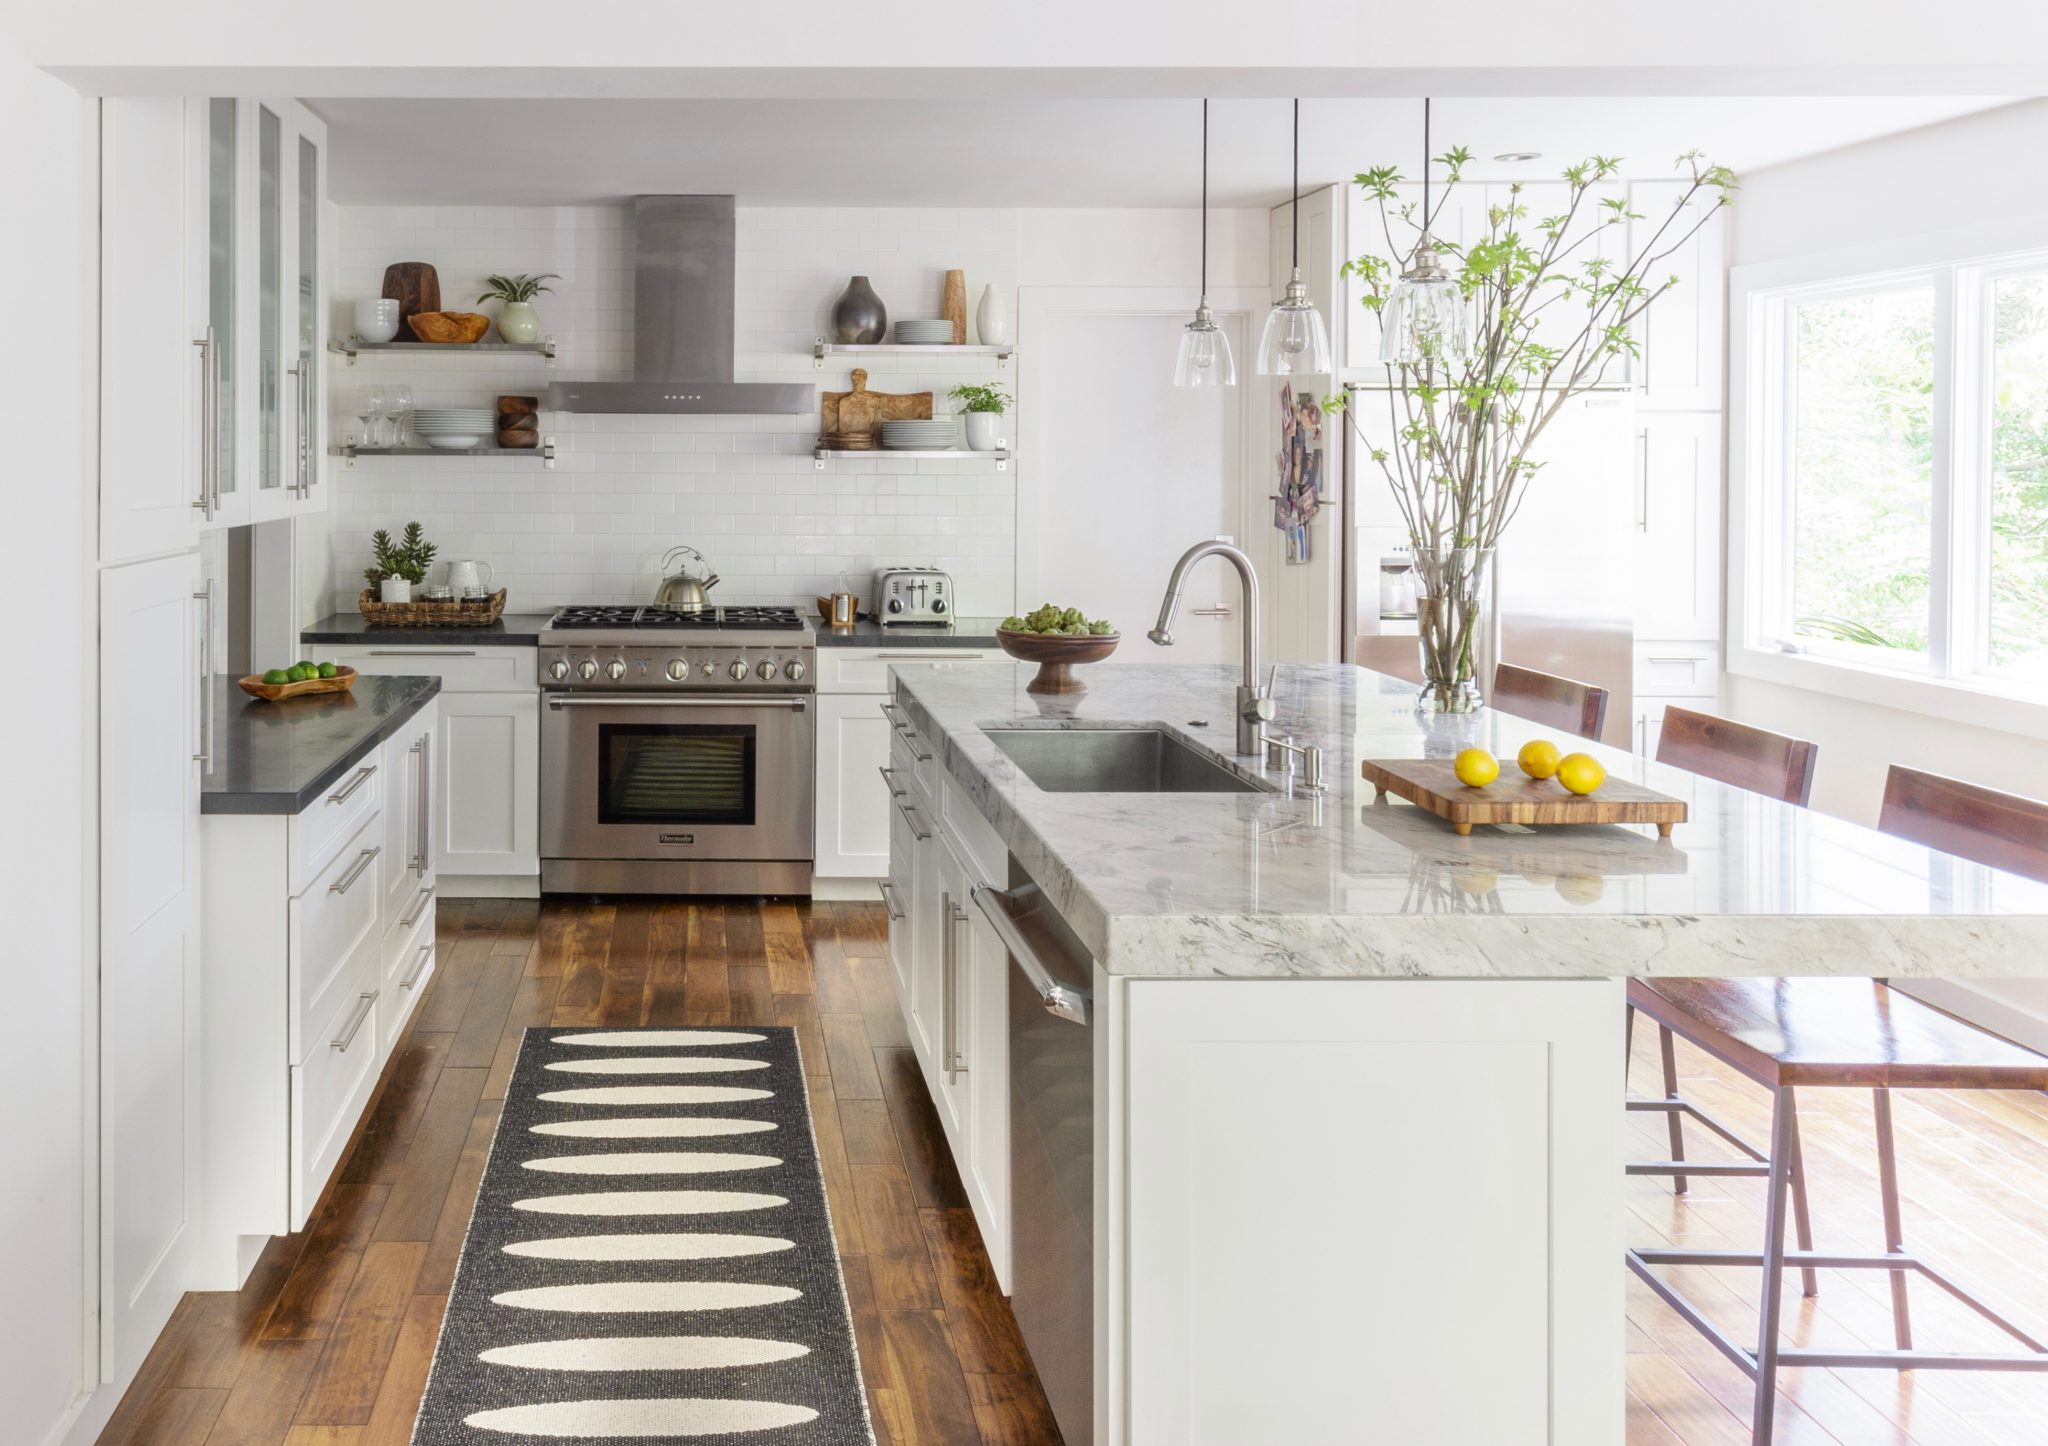 Mill Valley in the trees: kitchen by Suzanne Childress Design